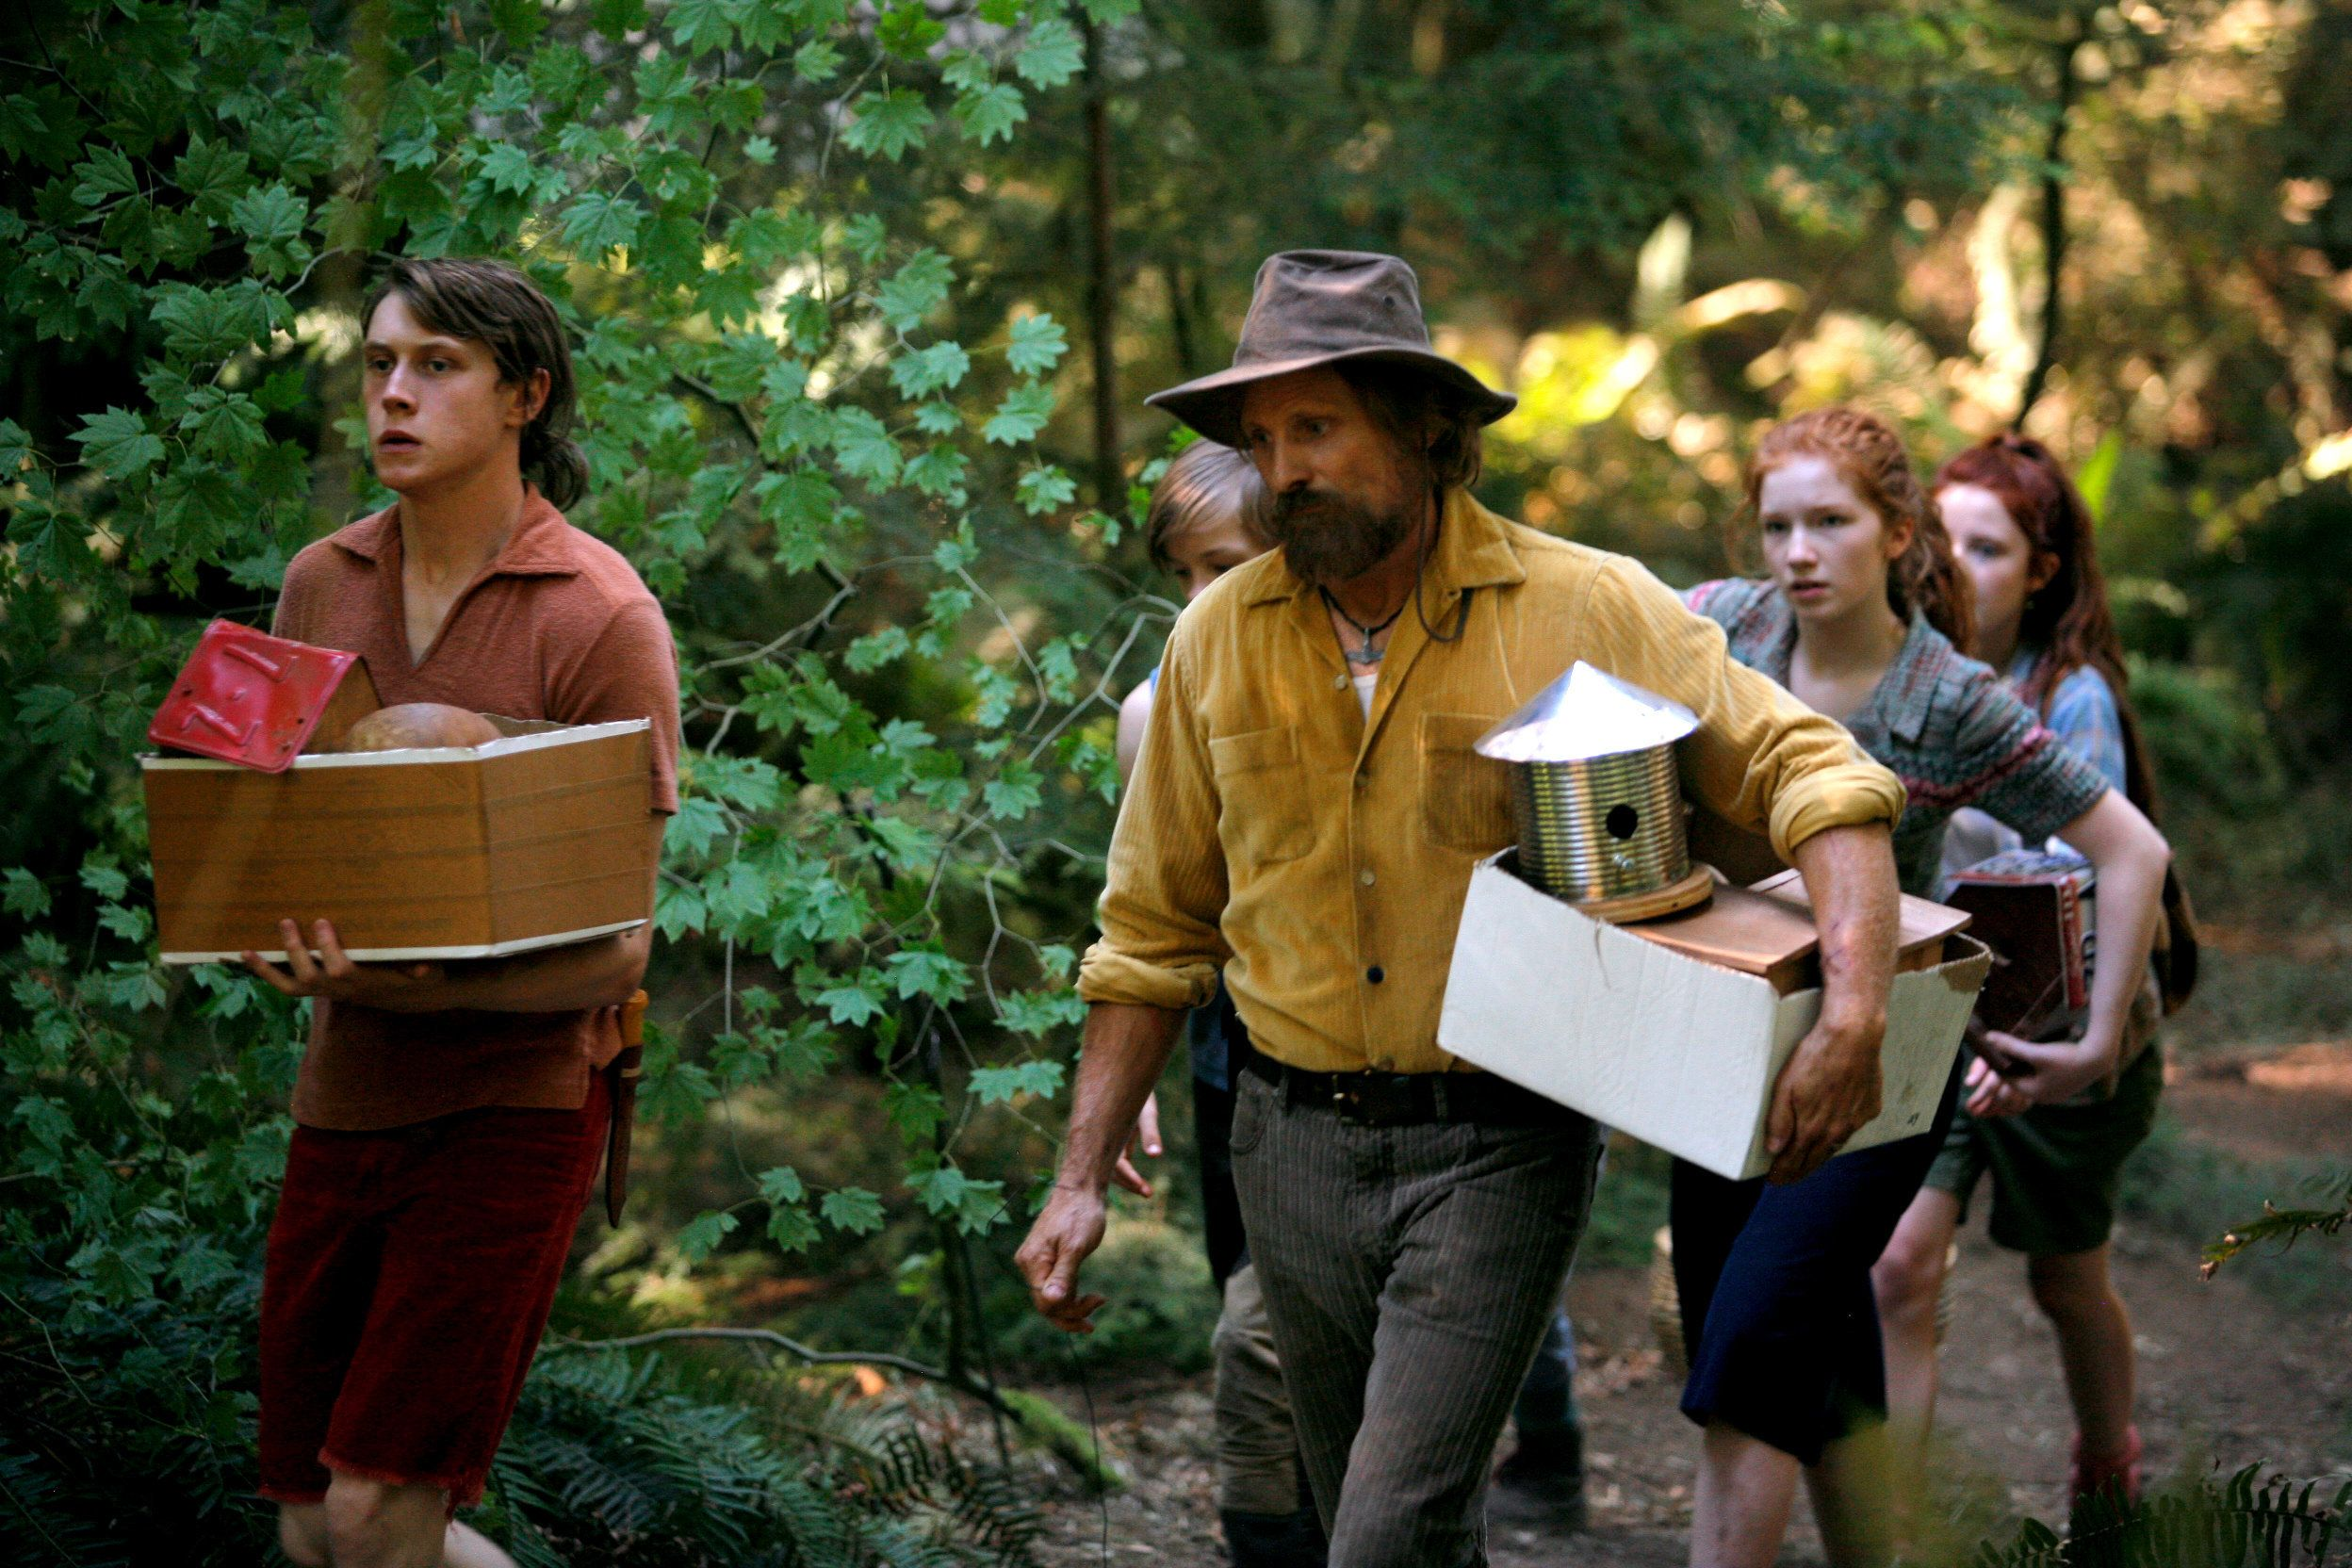 CF_00036_R